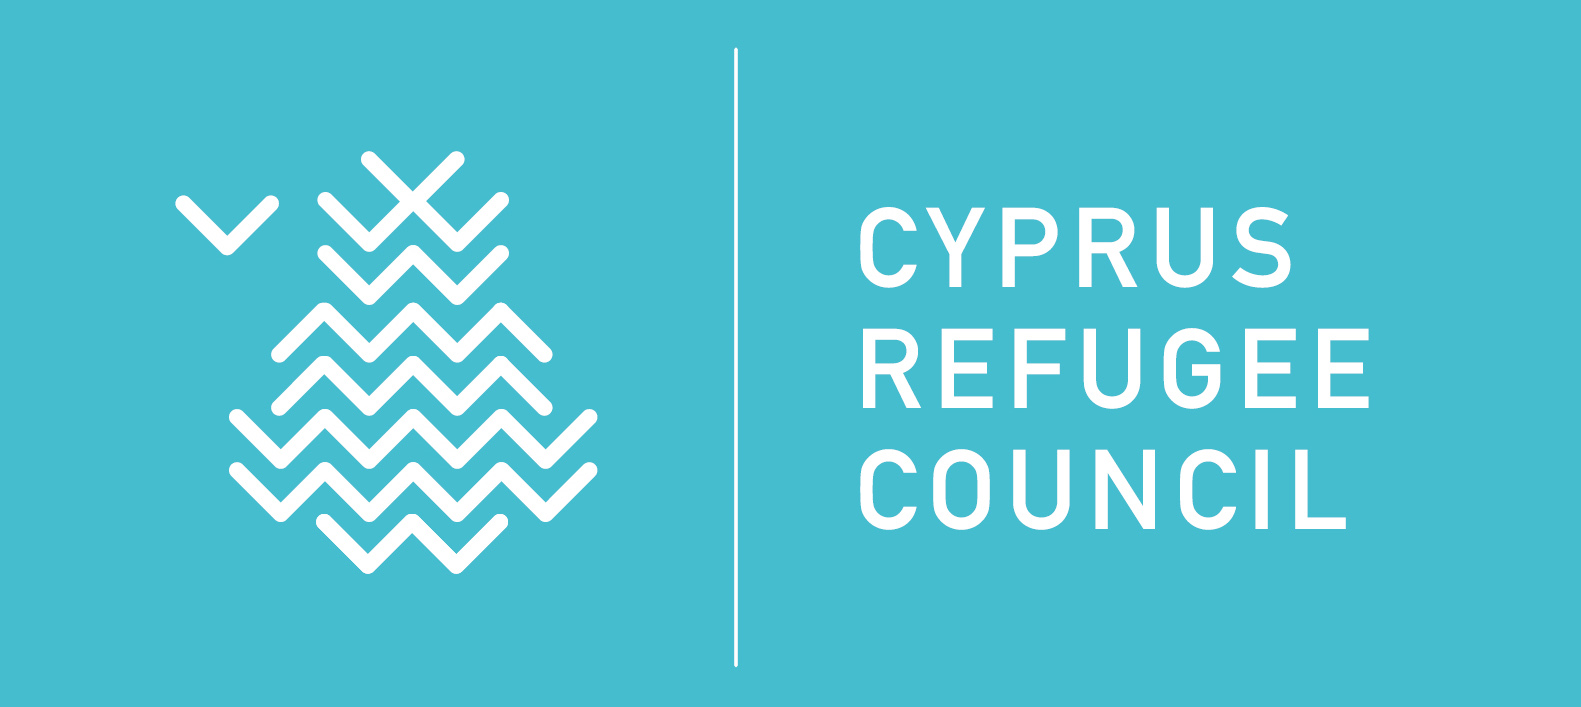 Cyprus Refugee Council